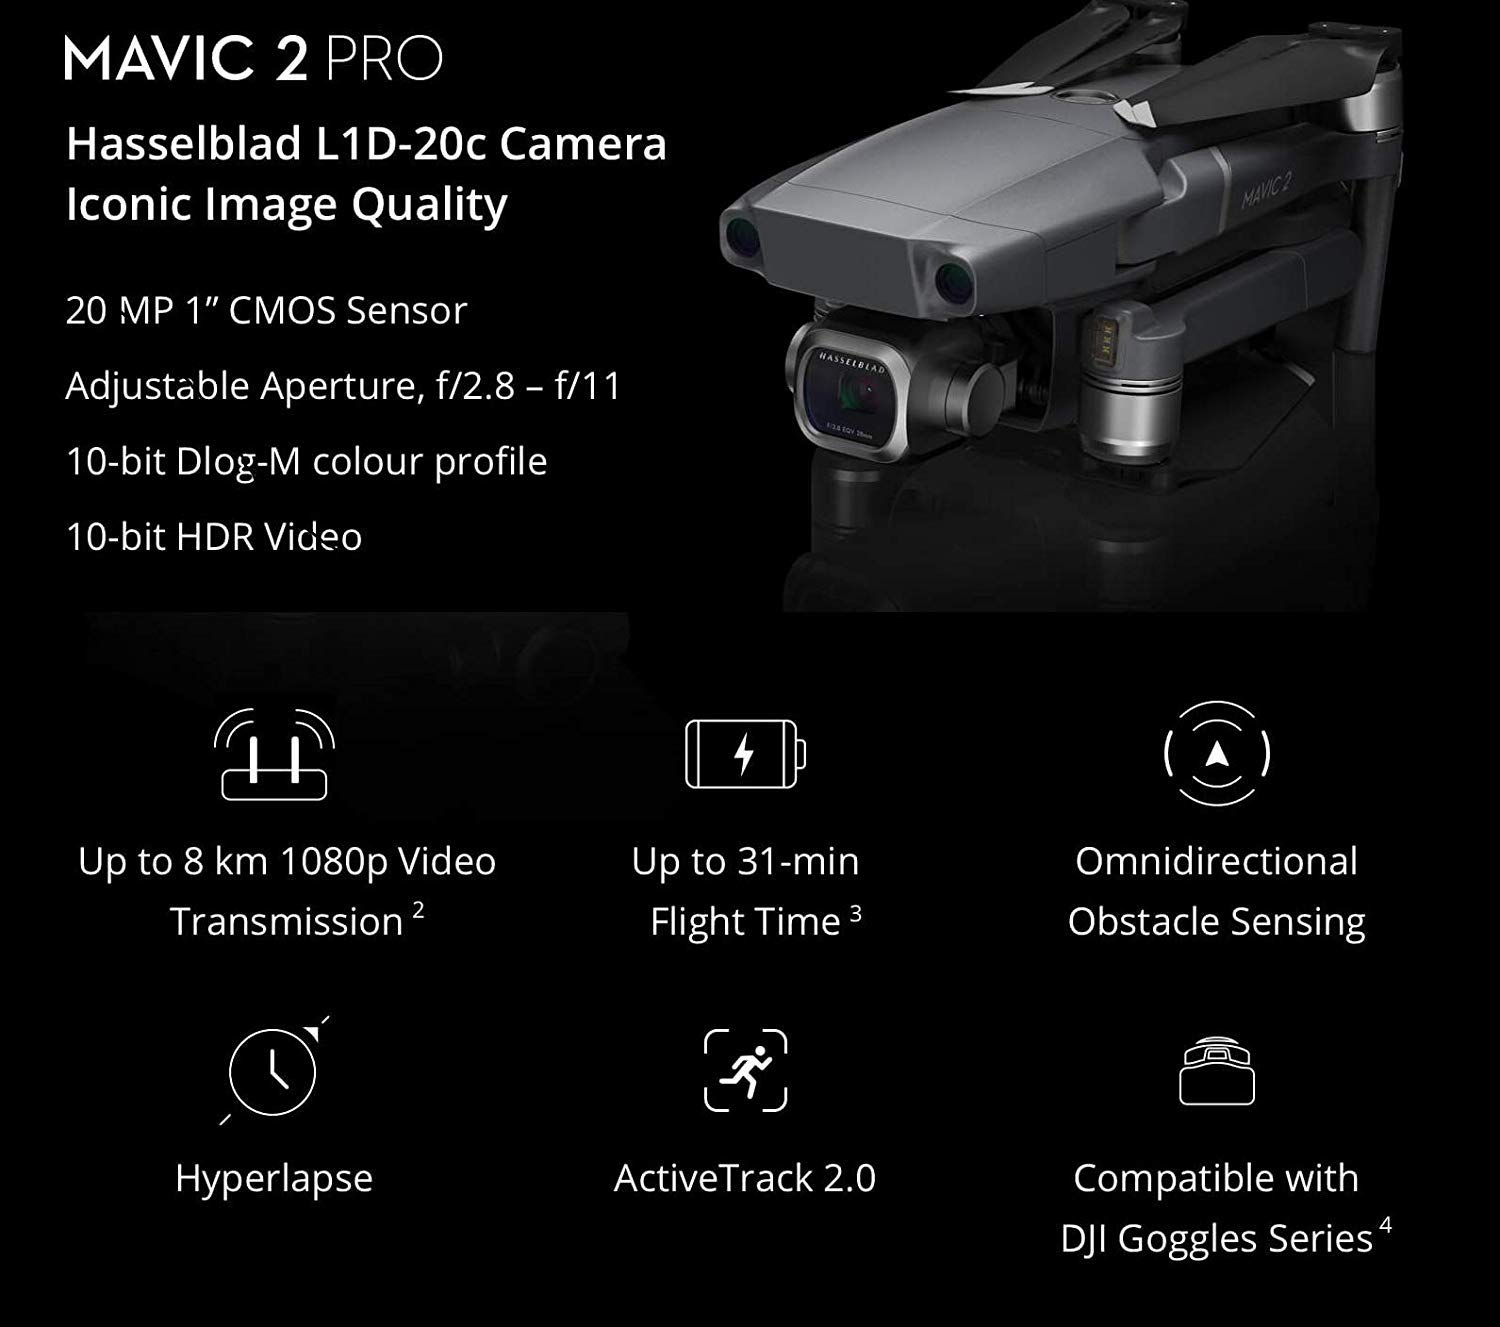 DJI-Mavic 2 Pro has 31 longest flight time